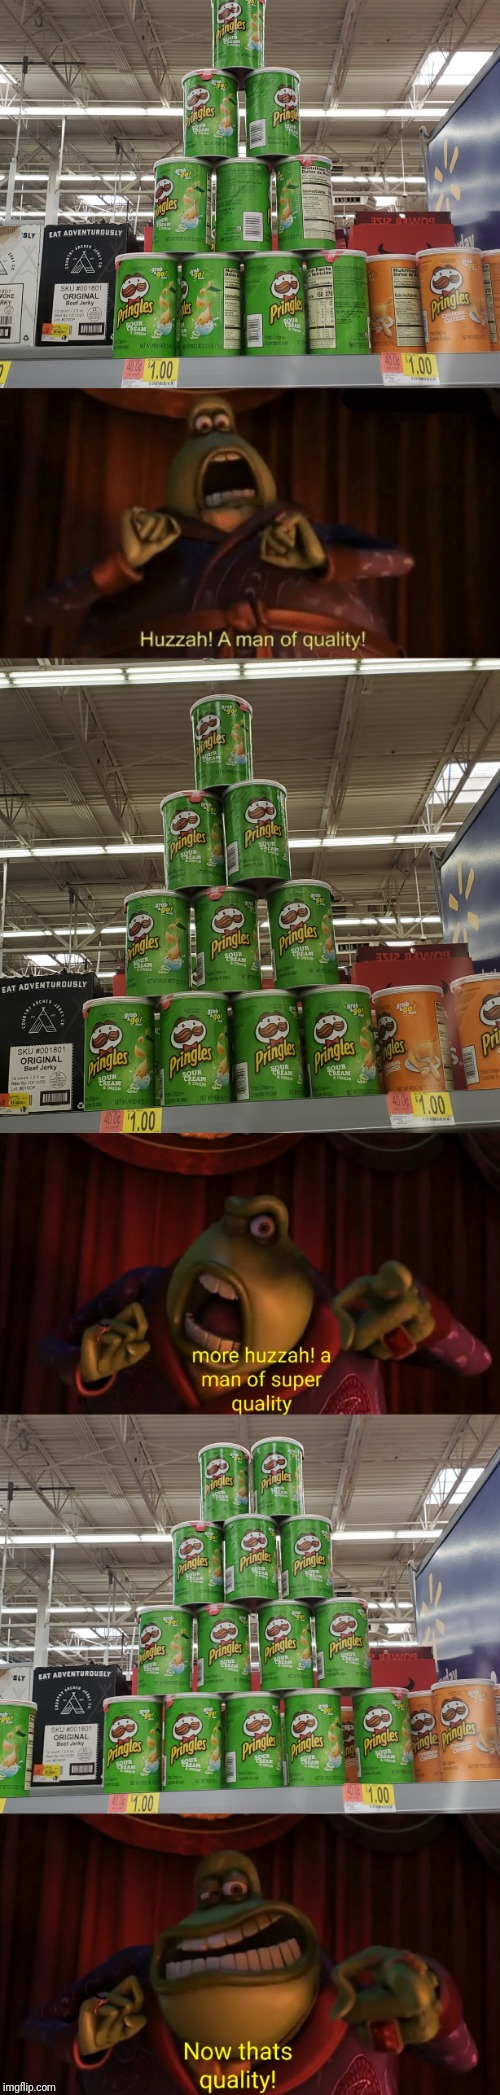 image tagged in a man of quality,pringles,quality,memes,stack,you had one job | made w/ Imgflip meme maker